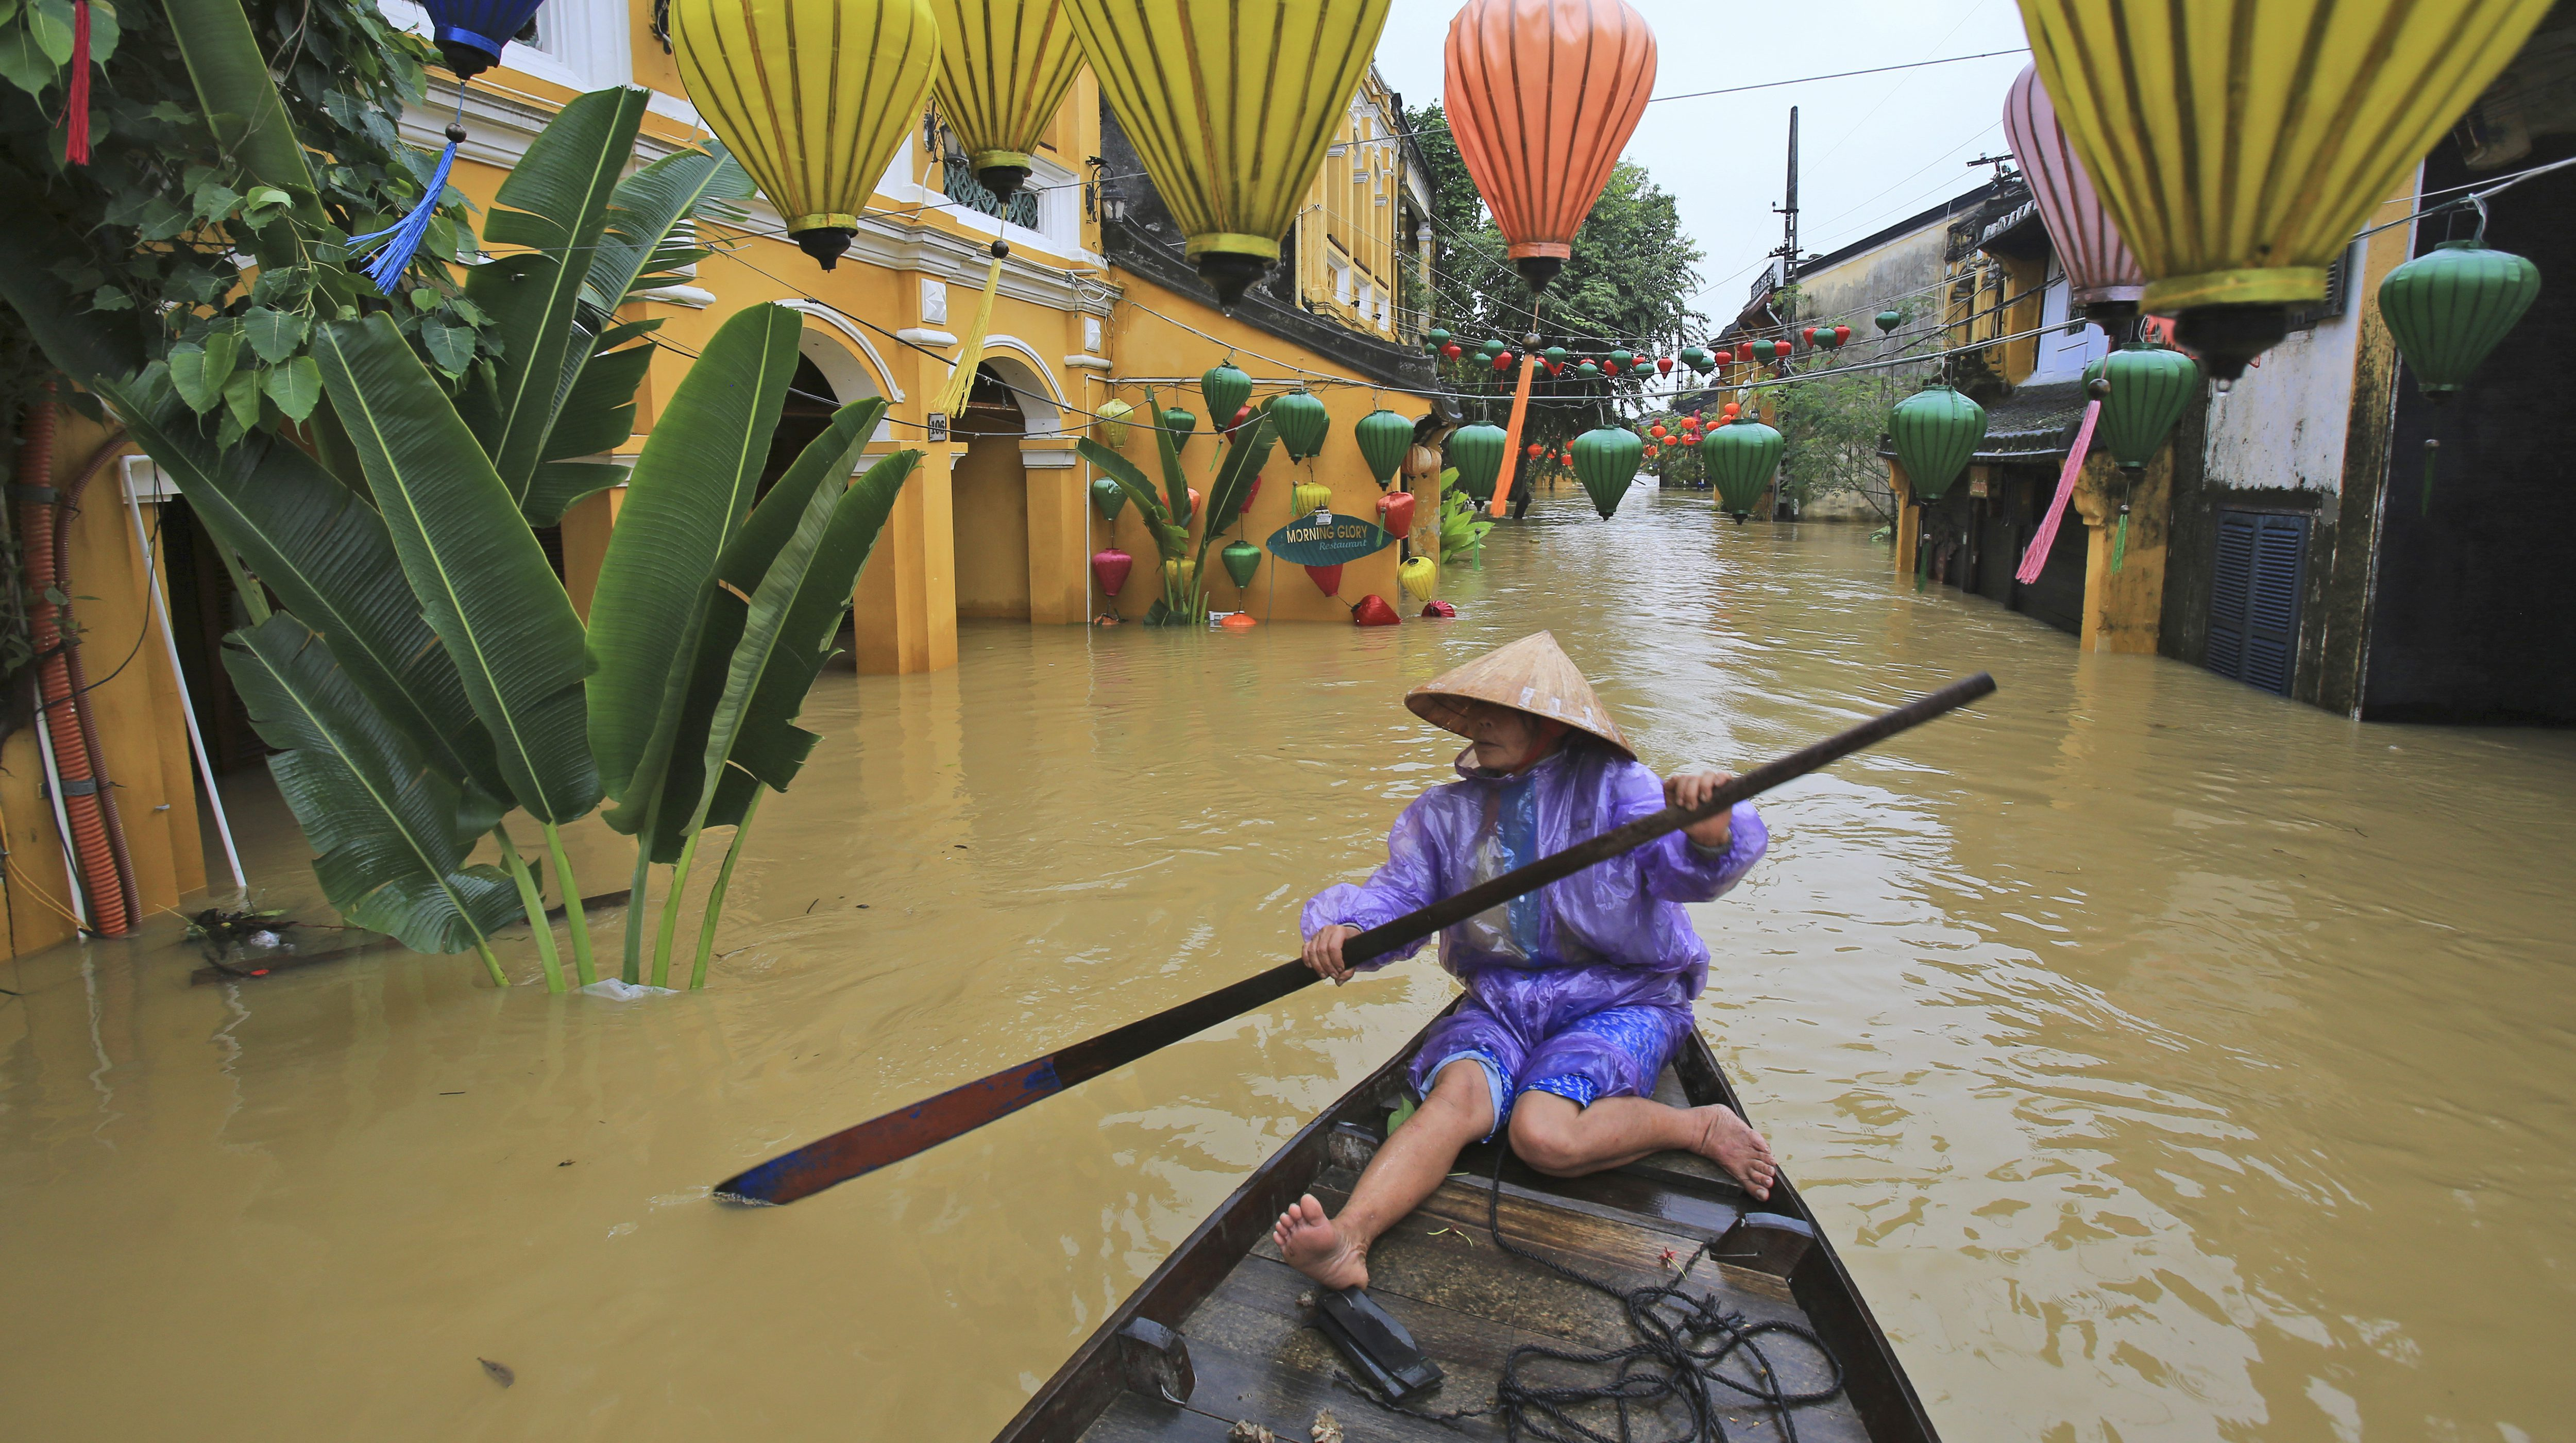 A week before Trump's arrival in Da Nang, Vietnam, Typhoon Damrey left nearby cities like Hoi An heavily flooded.